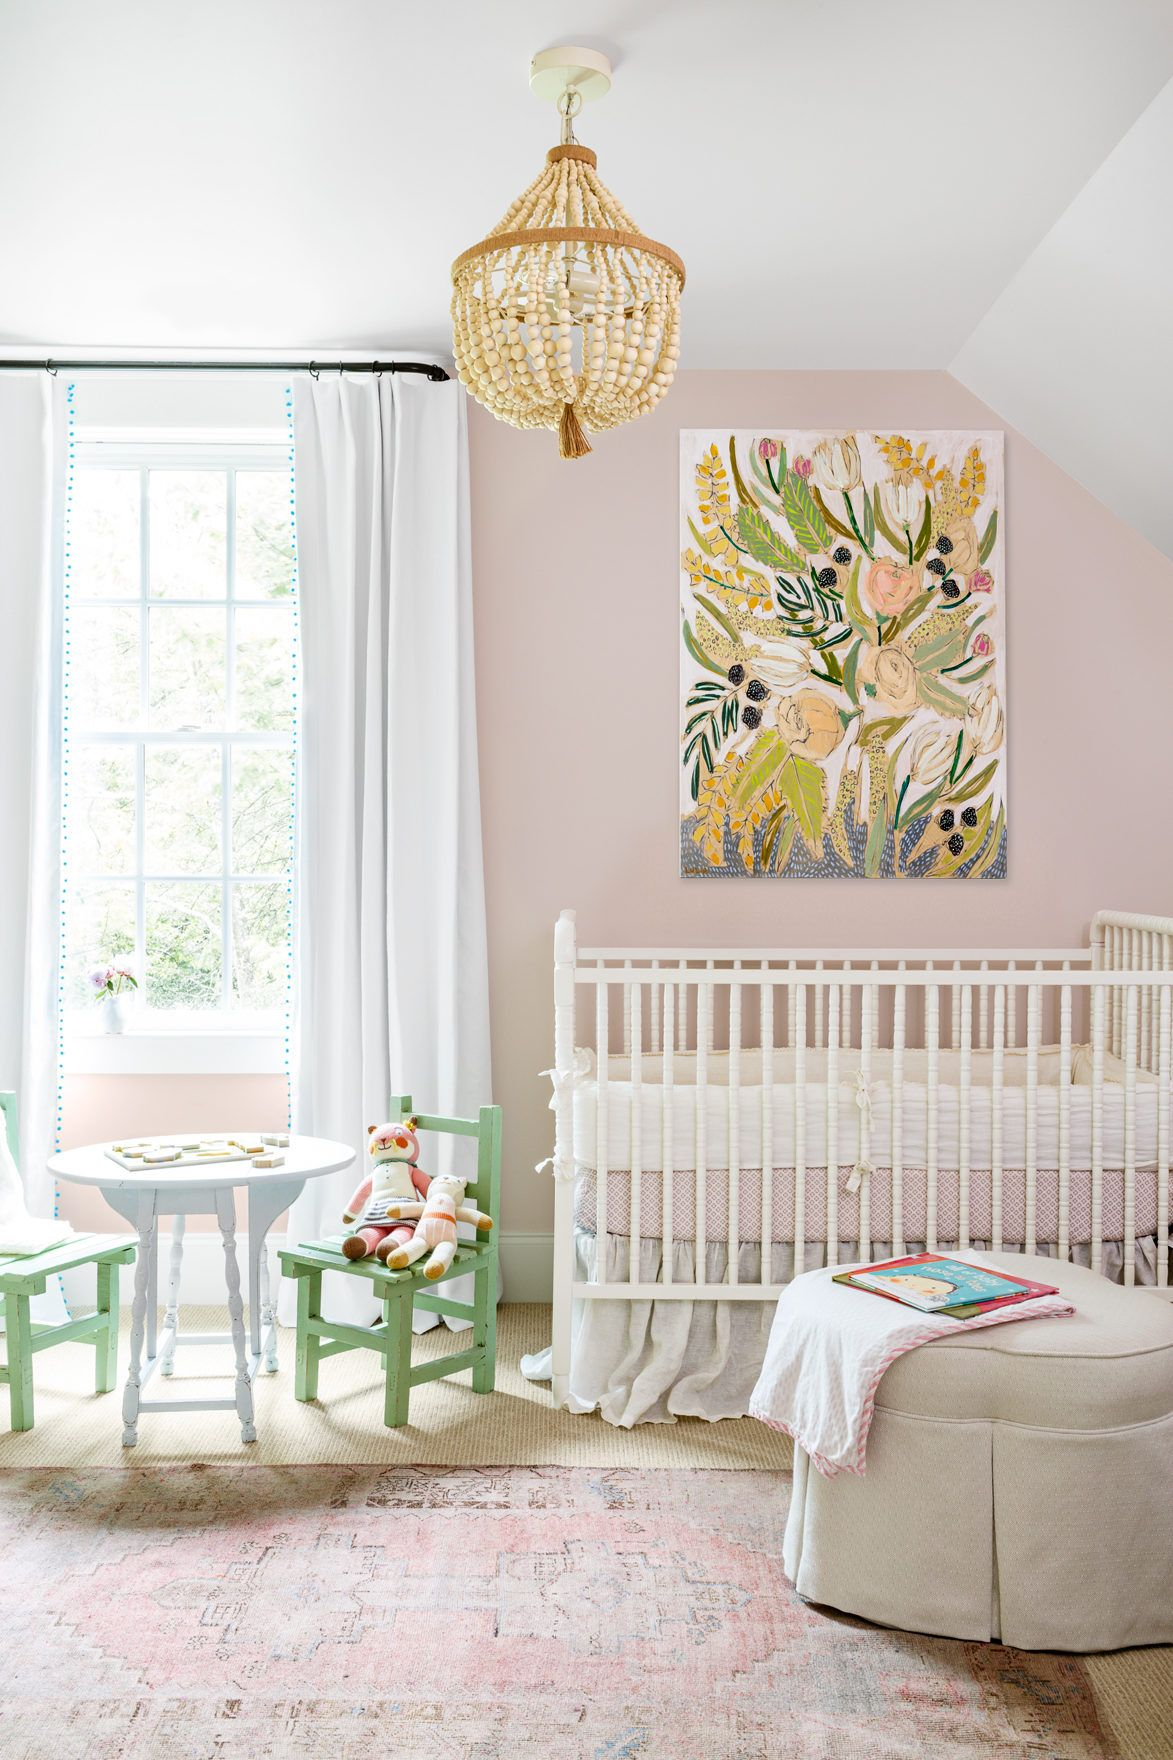 The Prettiest Blush Pink Paint Colors Baby room decor